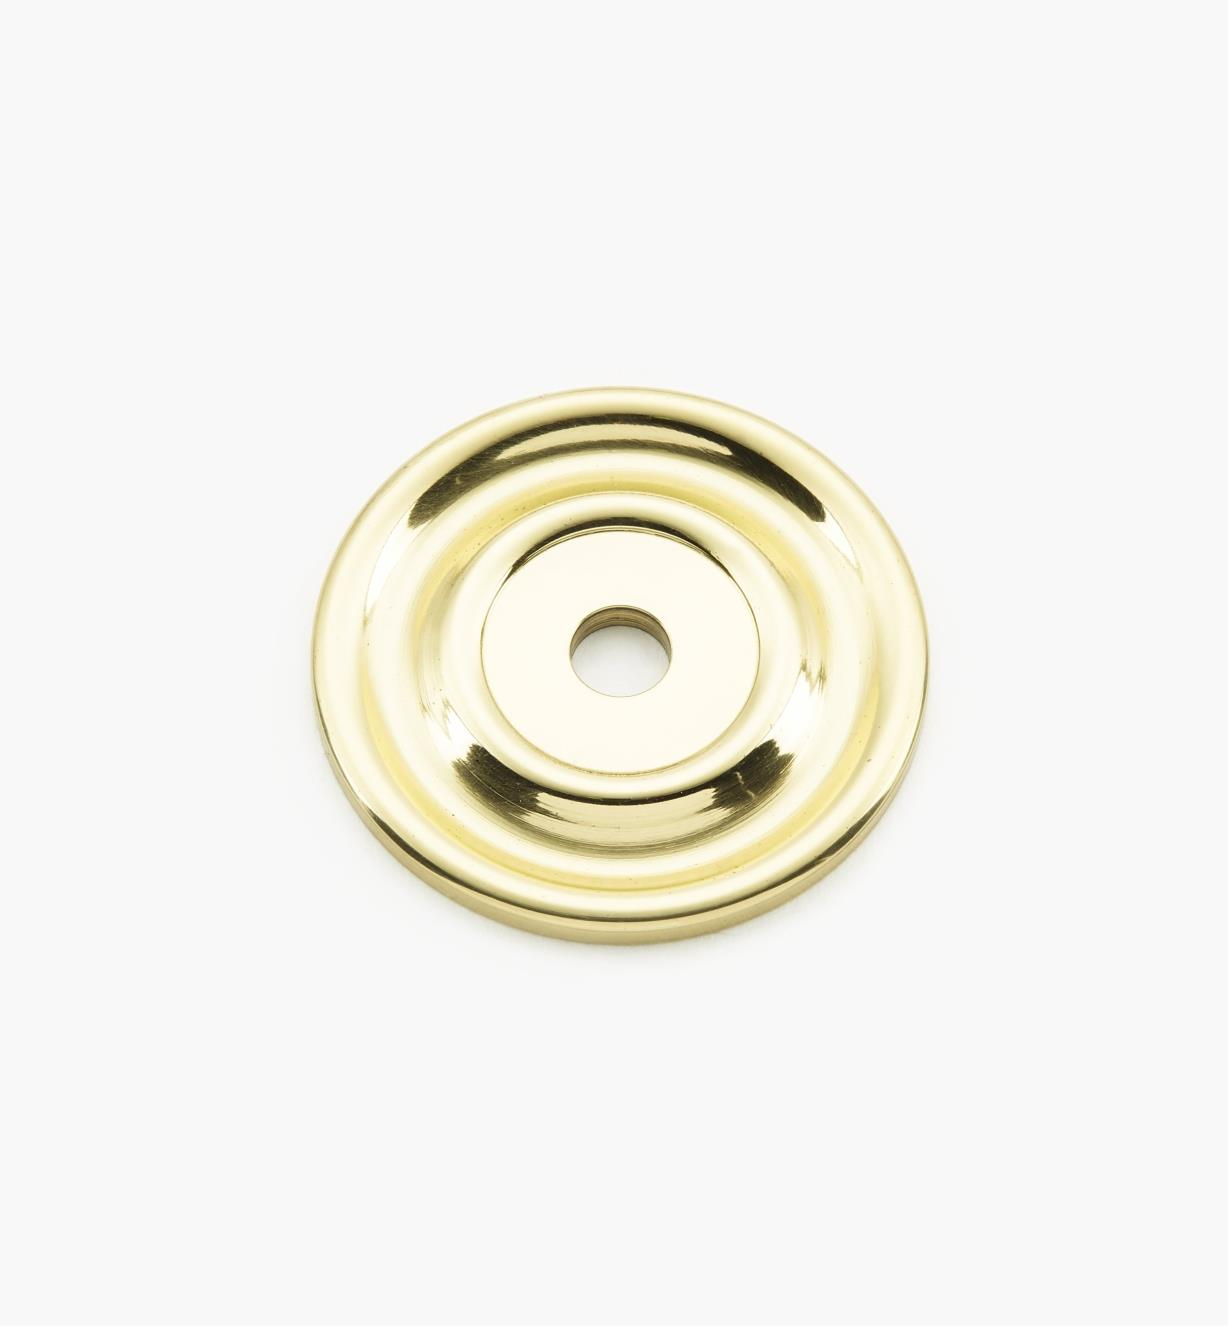 "02W3211 - Polished Brass Suite - 1 5/8"" Knob Escutcheons"